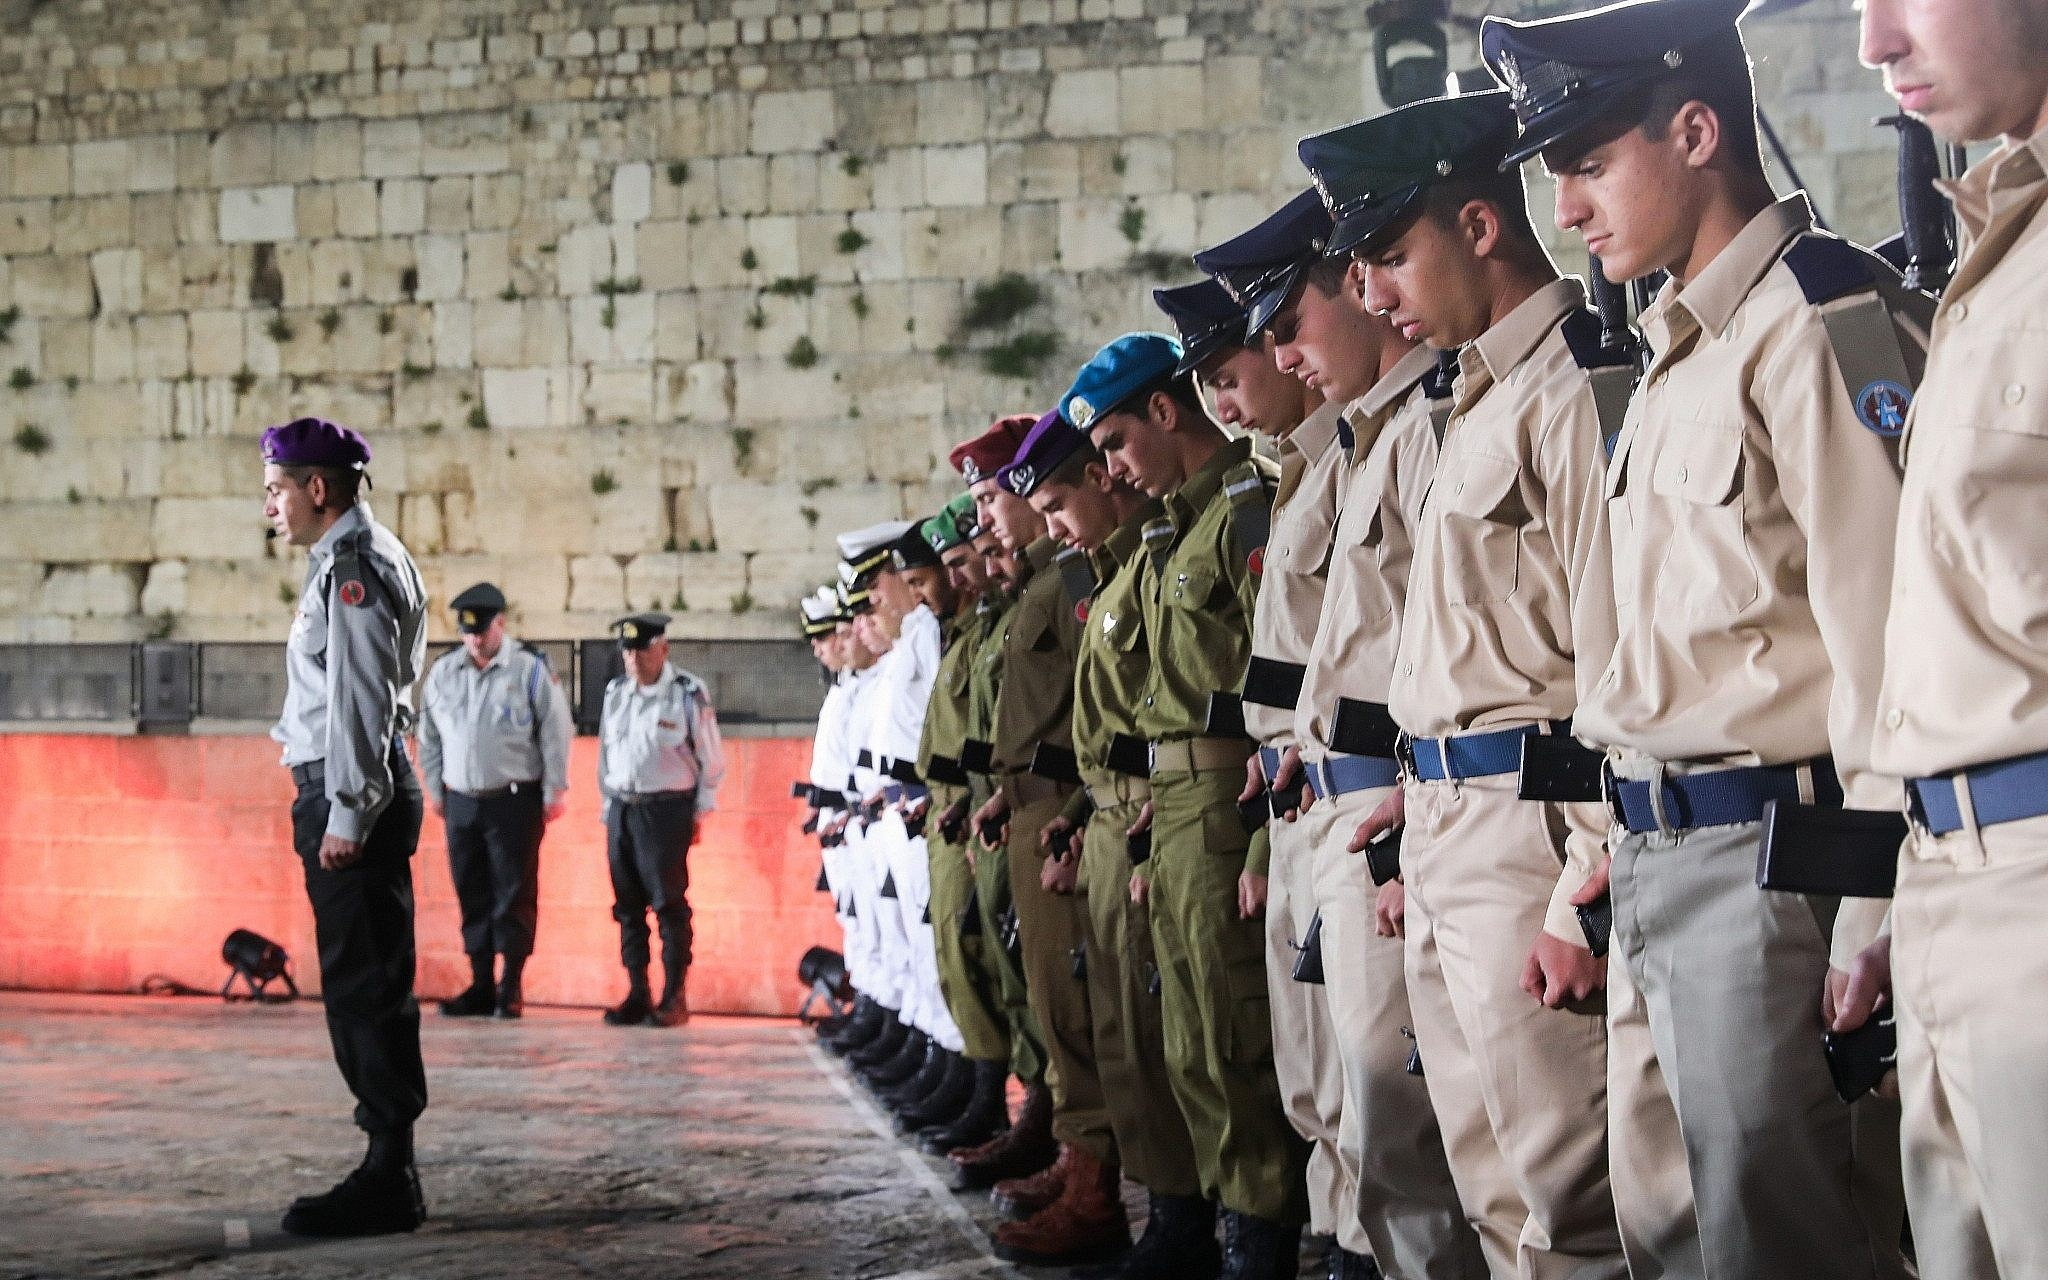 Israeli soldiers stand at attention as the siren sounds to mark the start of Memorial Day during the official state ceremony at the Western Wall in Jerusalem's Old City